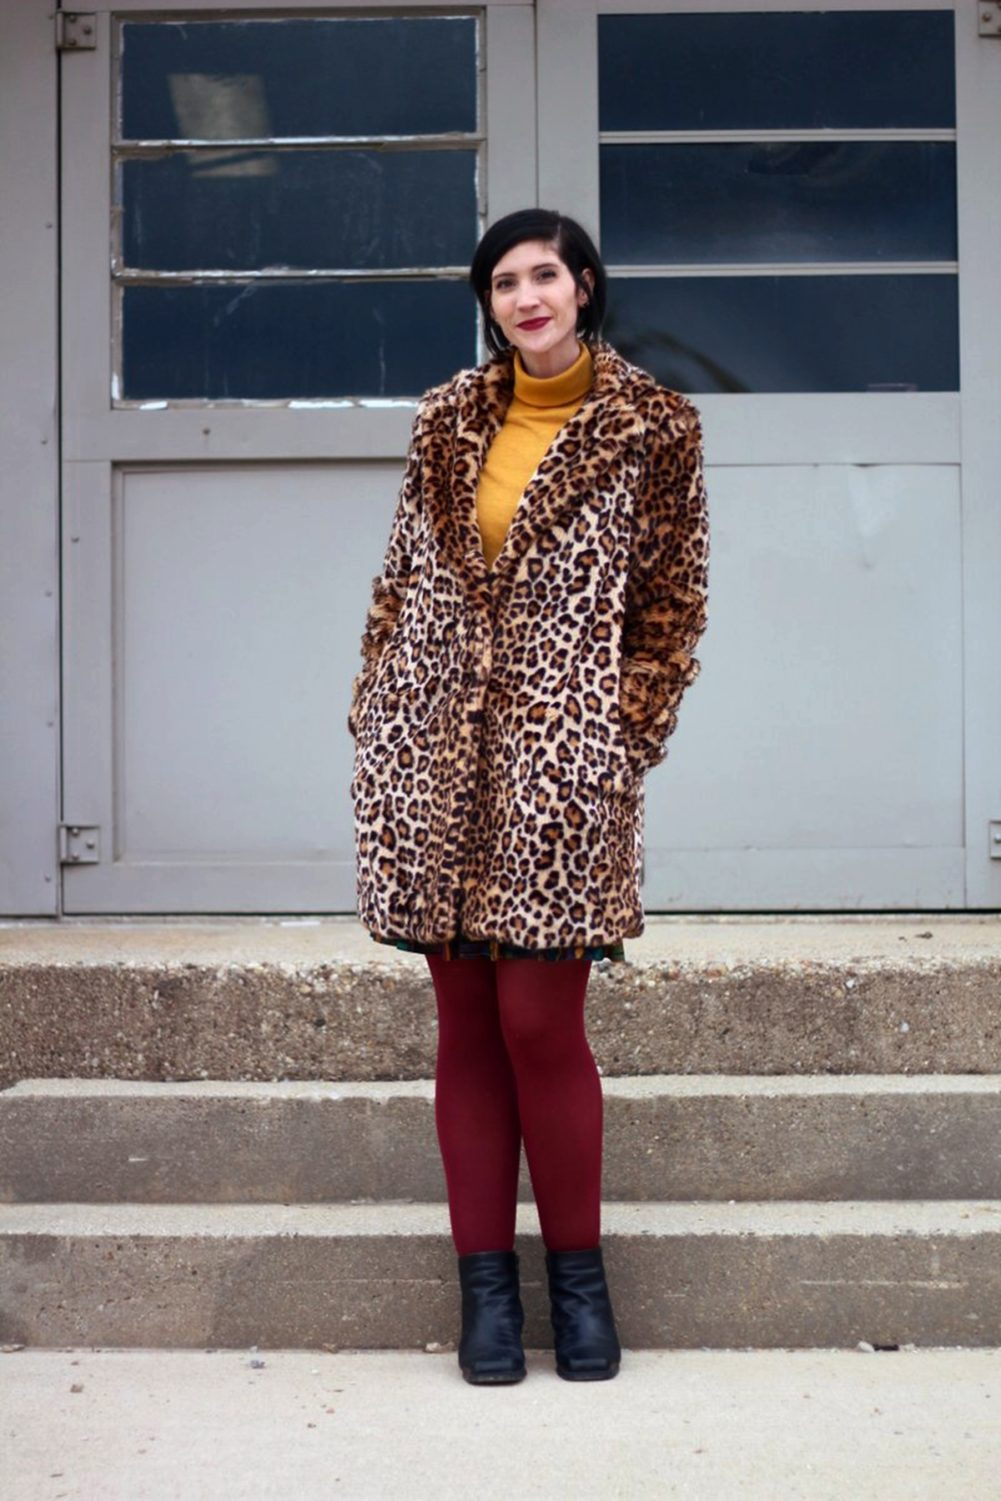 Outfit: Leopard print coat, mustard yellow turtleneck, multi colored skirt, maroon tights, black booties